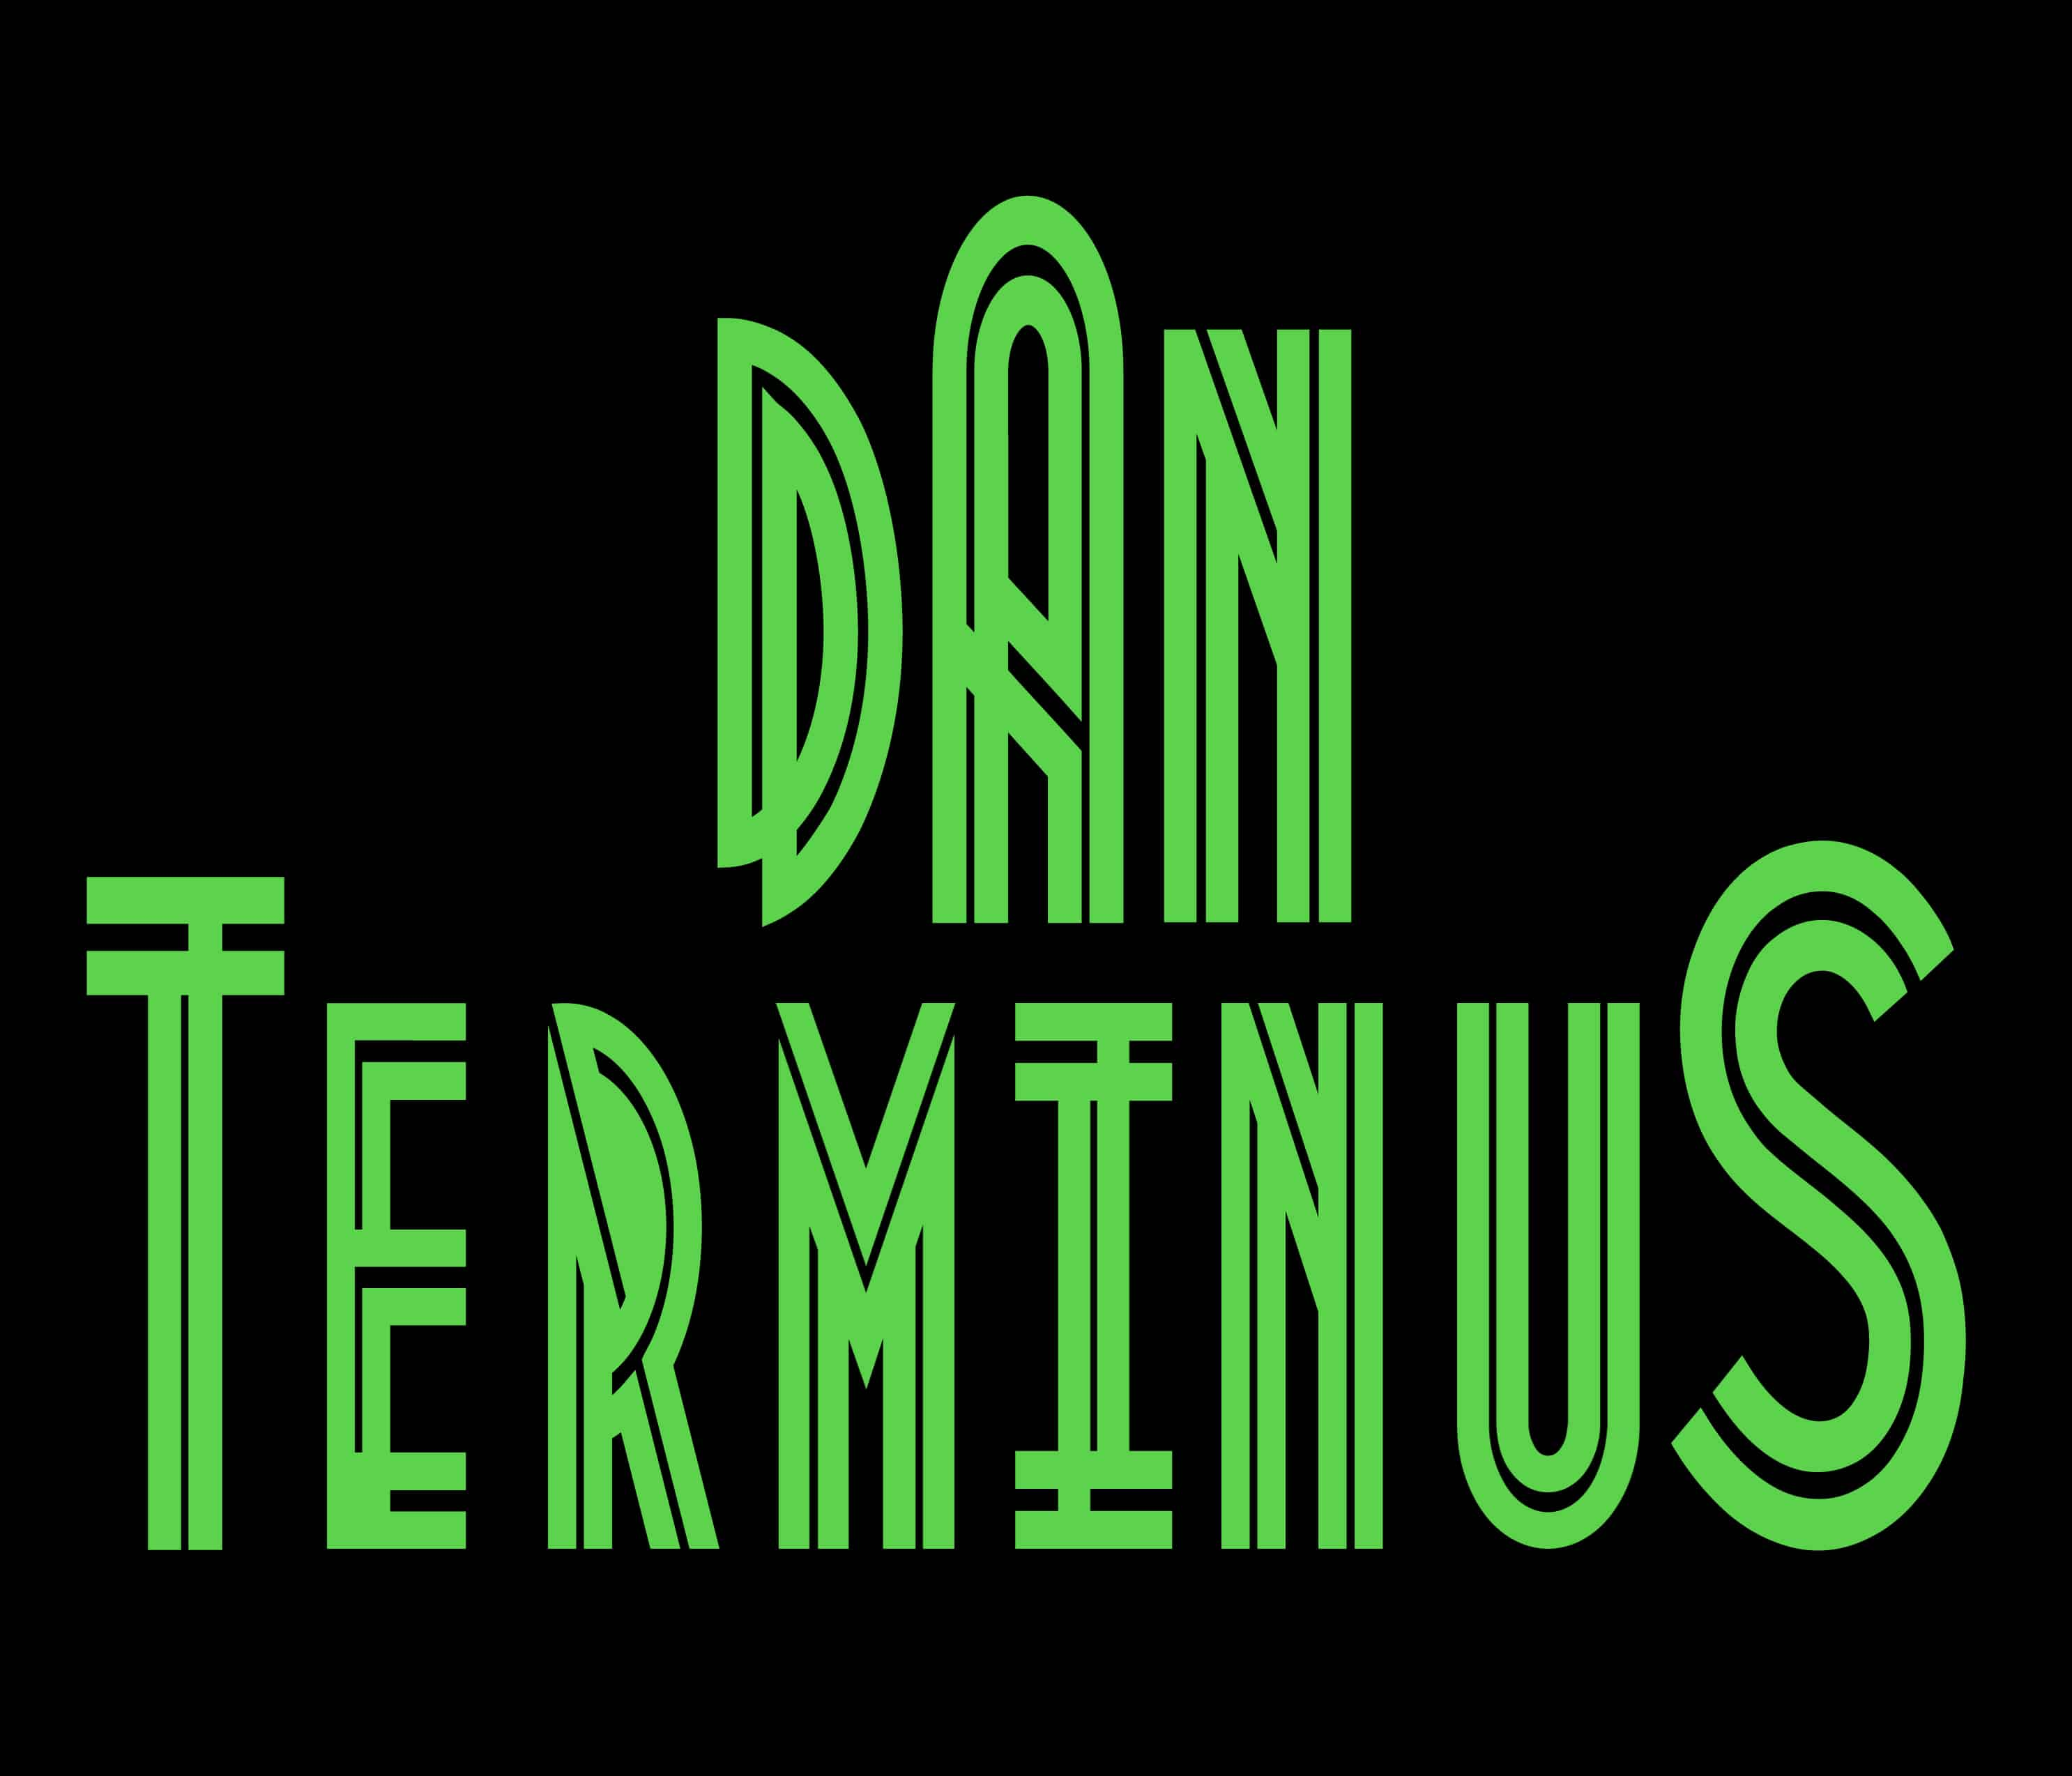 Dan Terminus graphic design